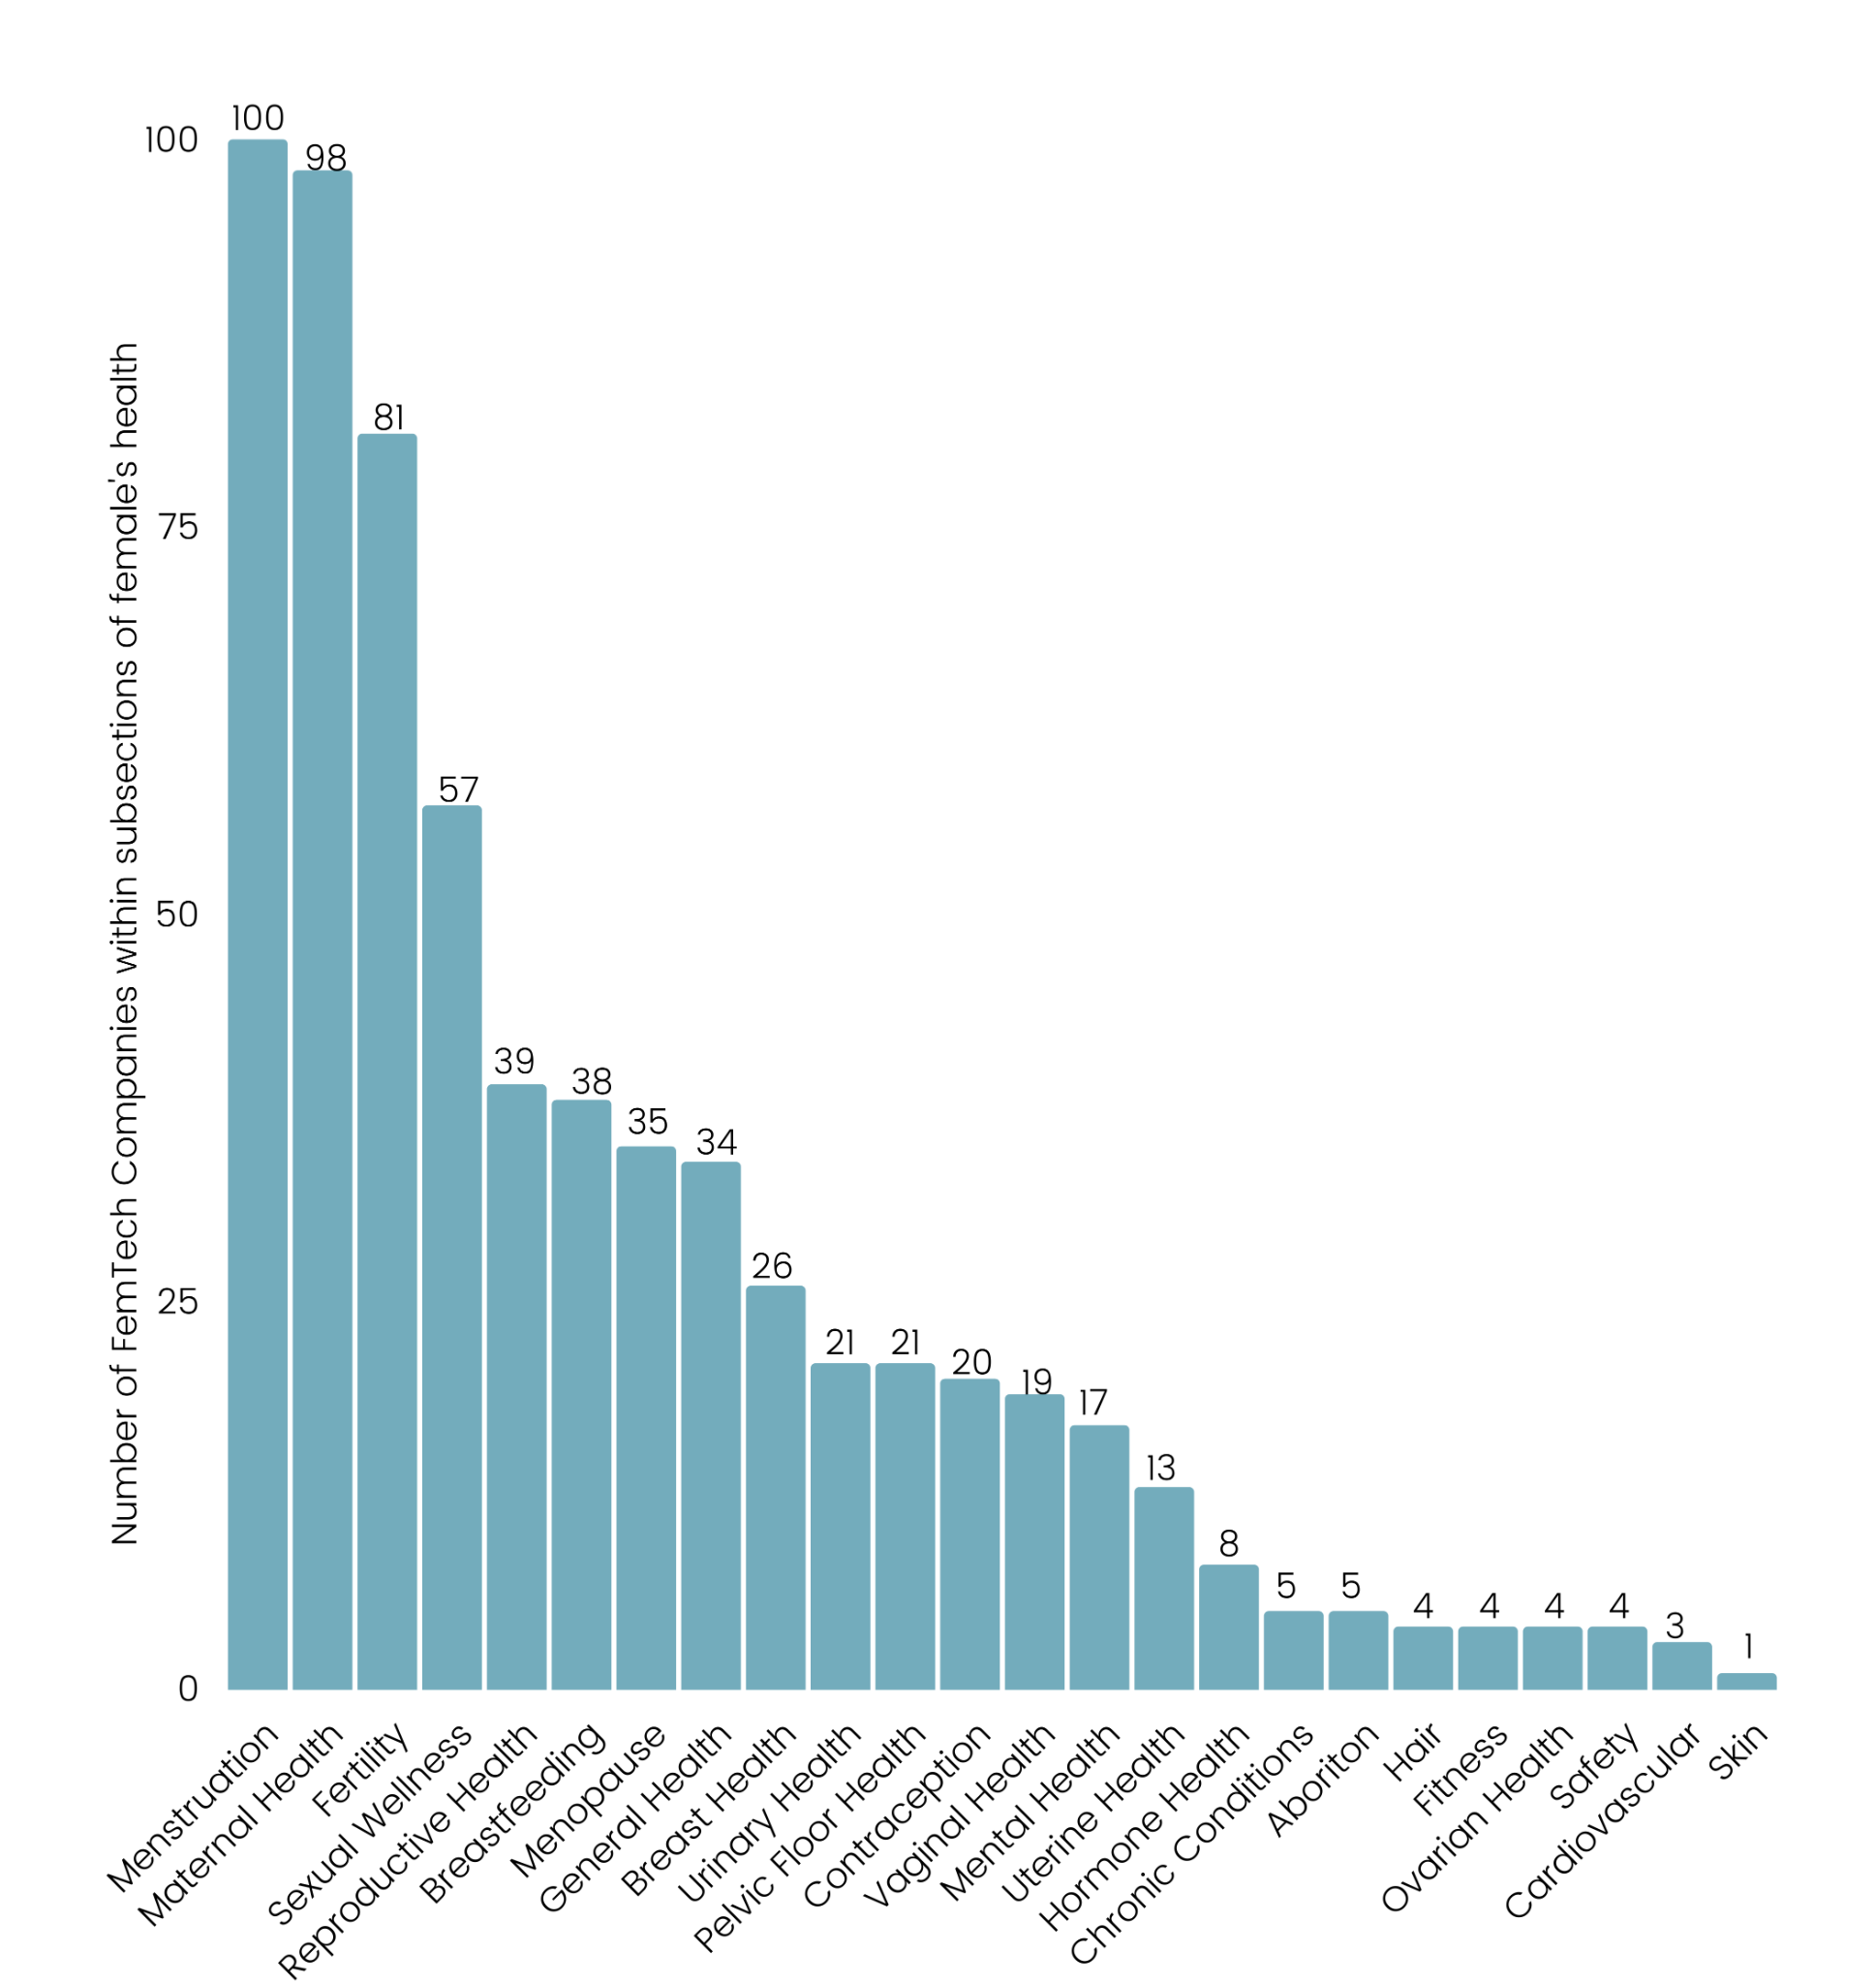 Bar chart showing the number of femtech companies within subsections of female health